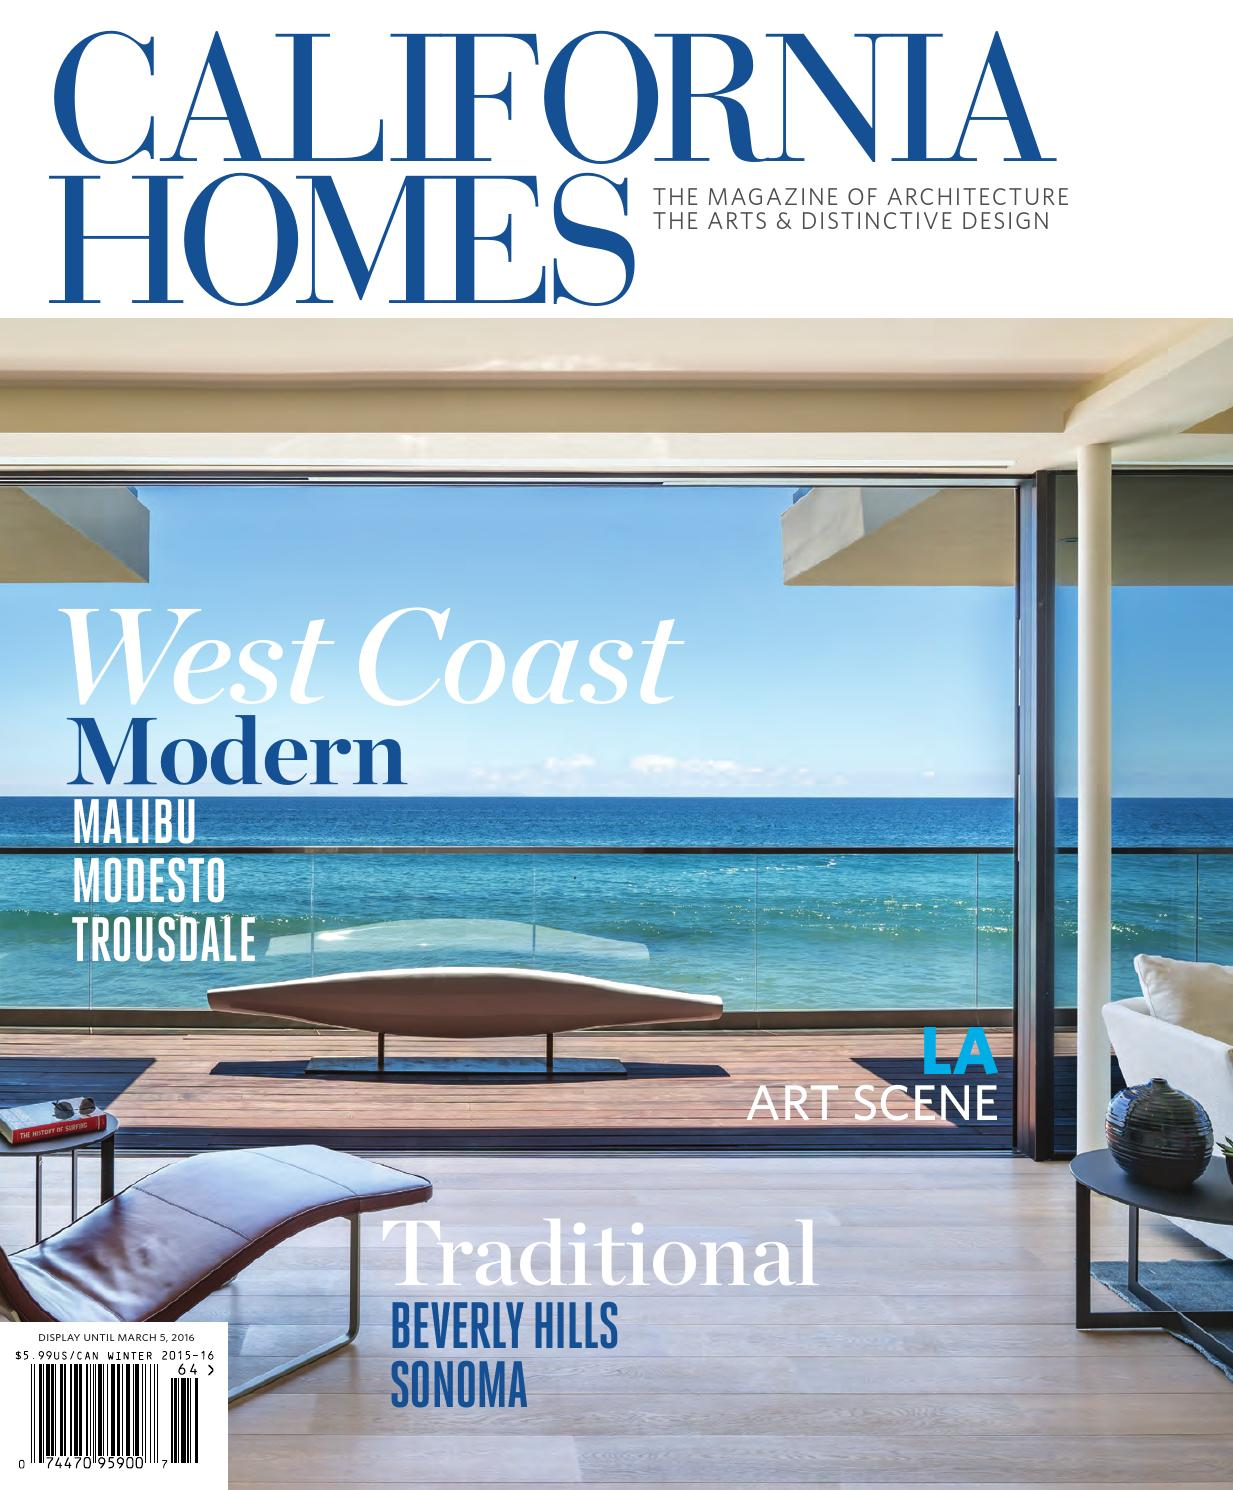 California Homes   Winter 2015 16 By California Homes Magazine   Issuu